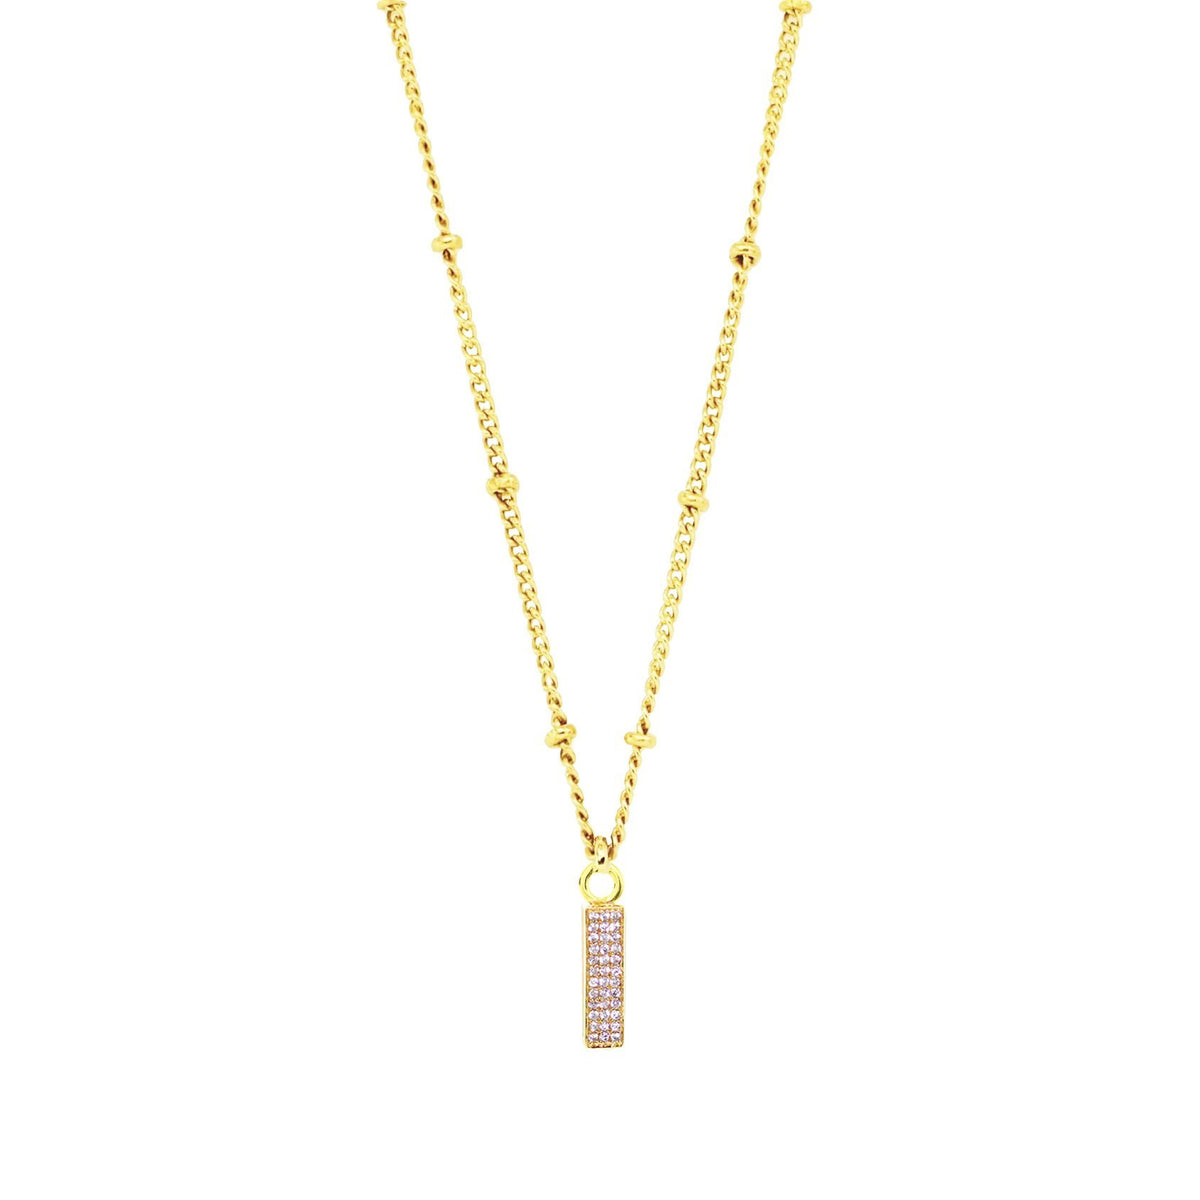 LOVE ICON - CUBIC ZIRCONIA & GOLD - SO PRETTY CARA COTTER